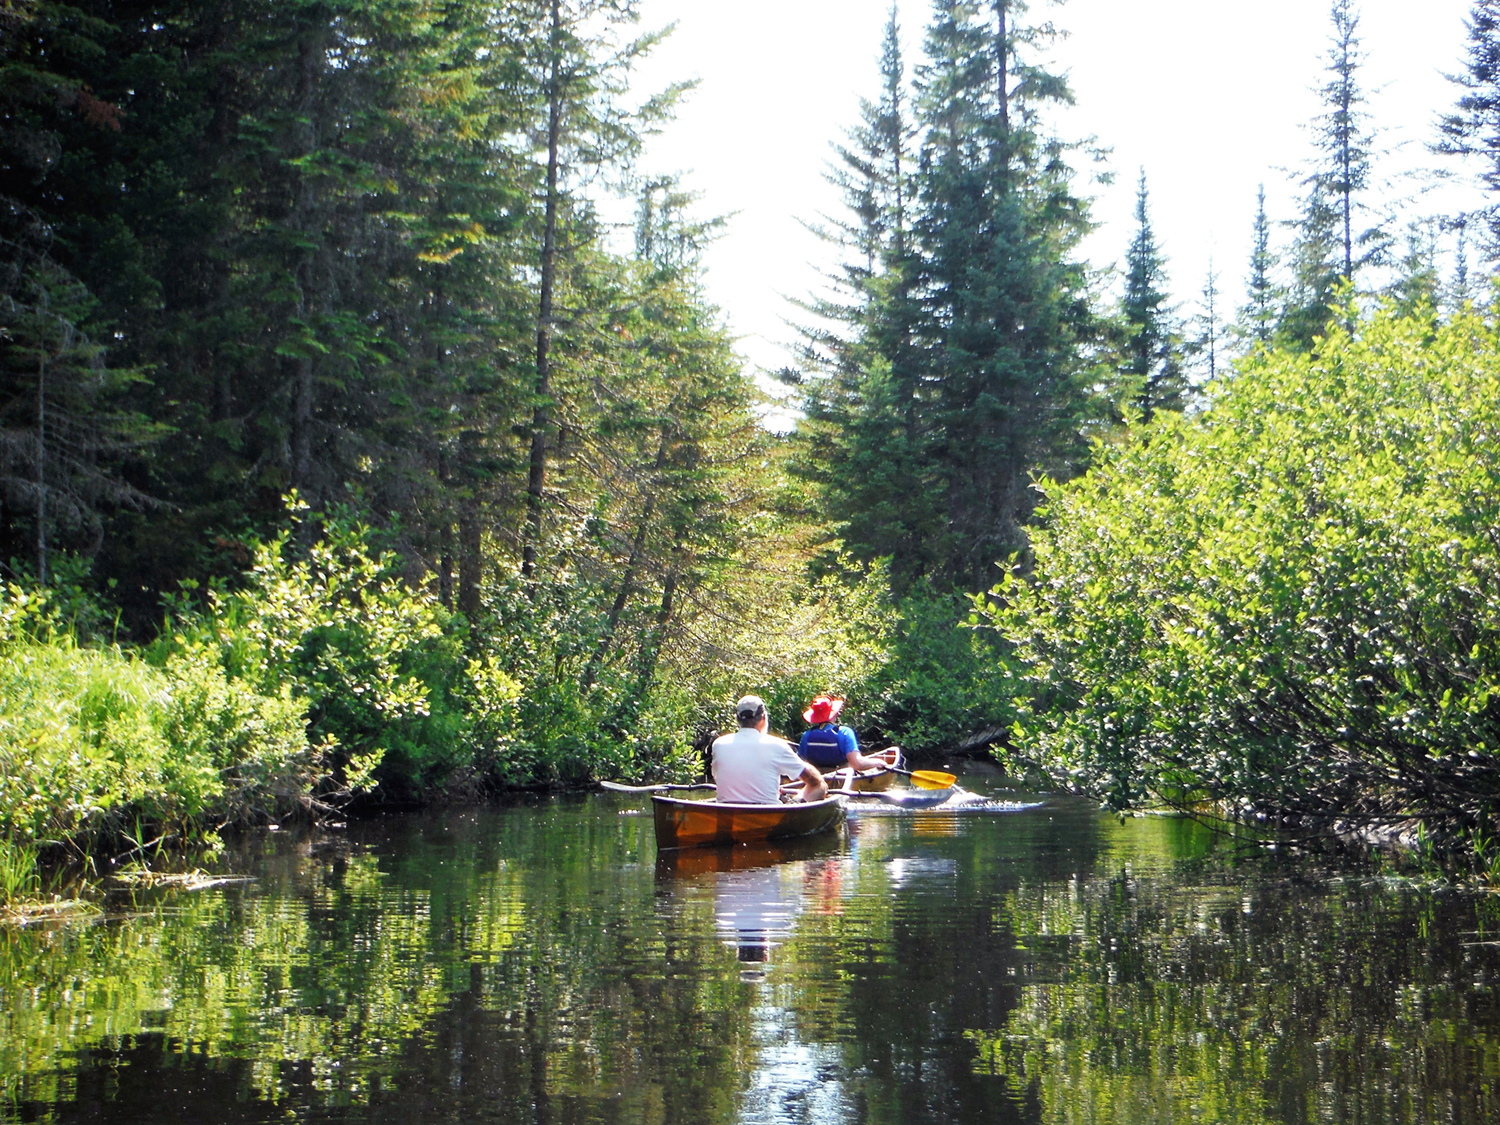 Heading back to Lake Lila on Shingle Shanty Brook.  Rich Macha